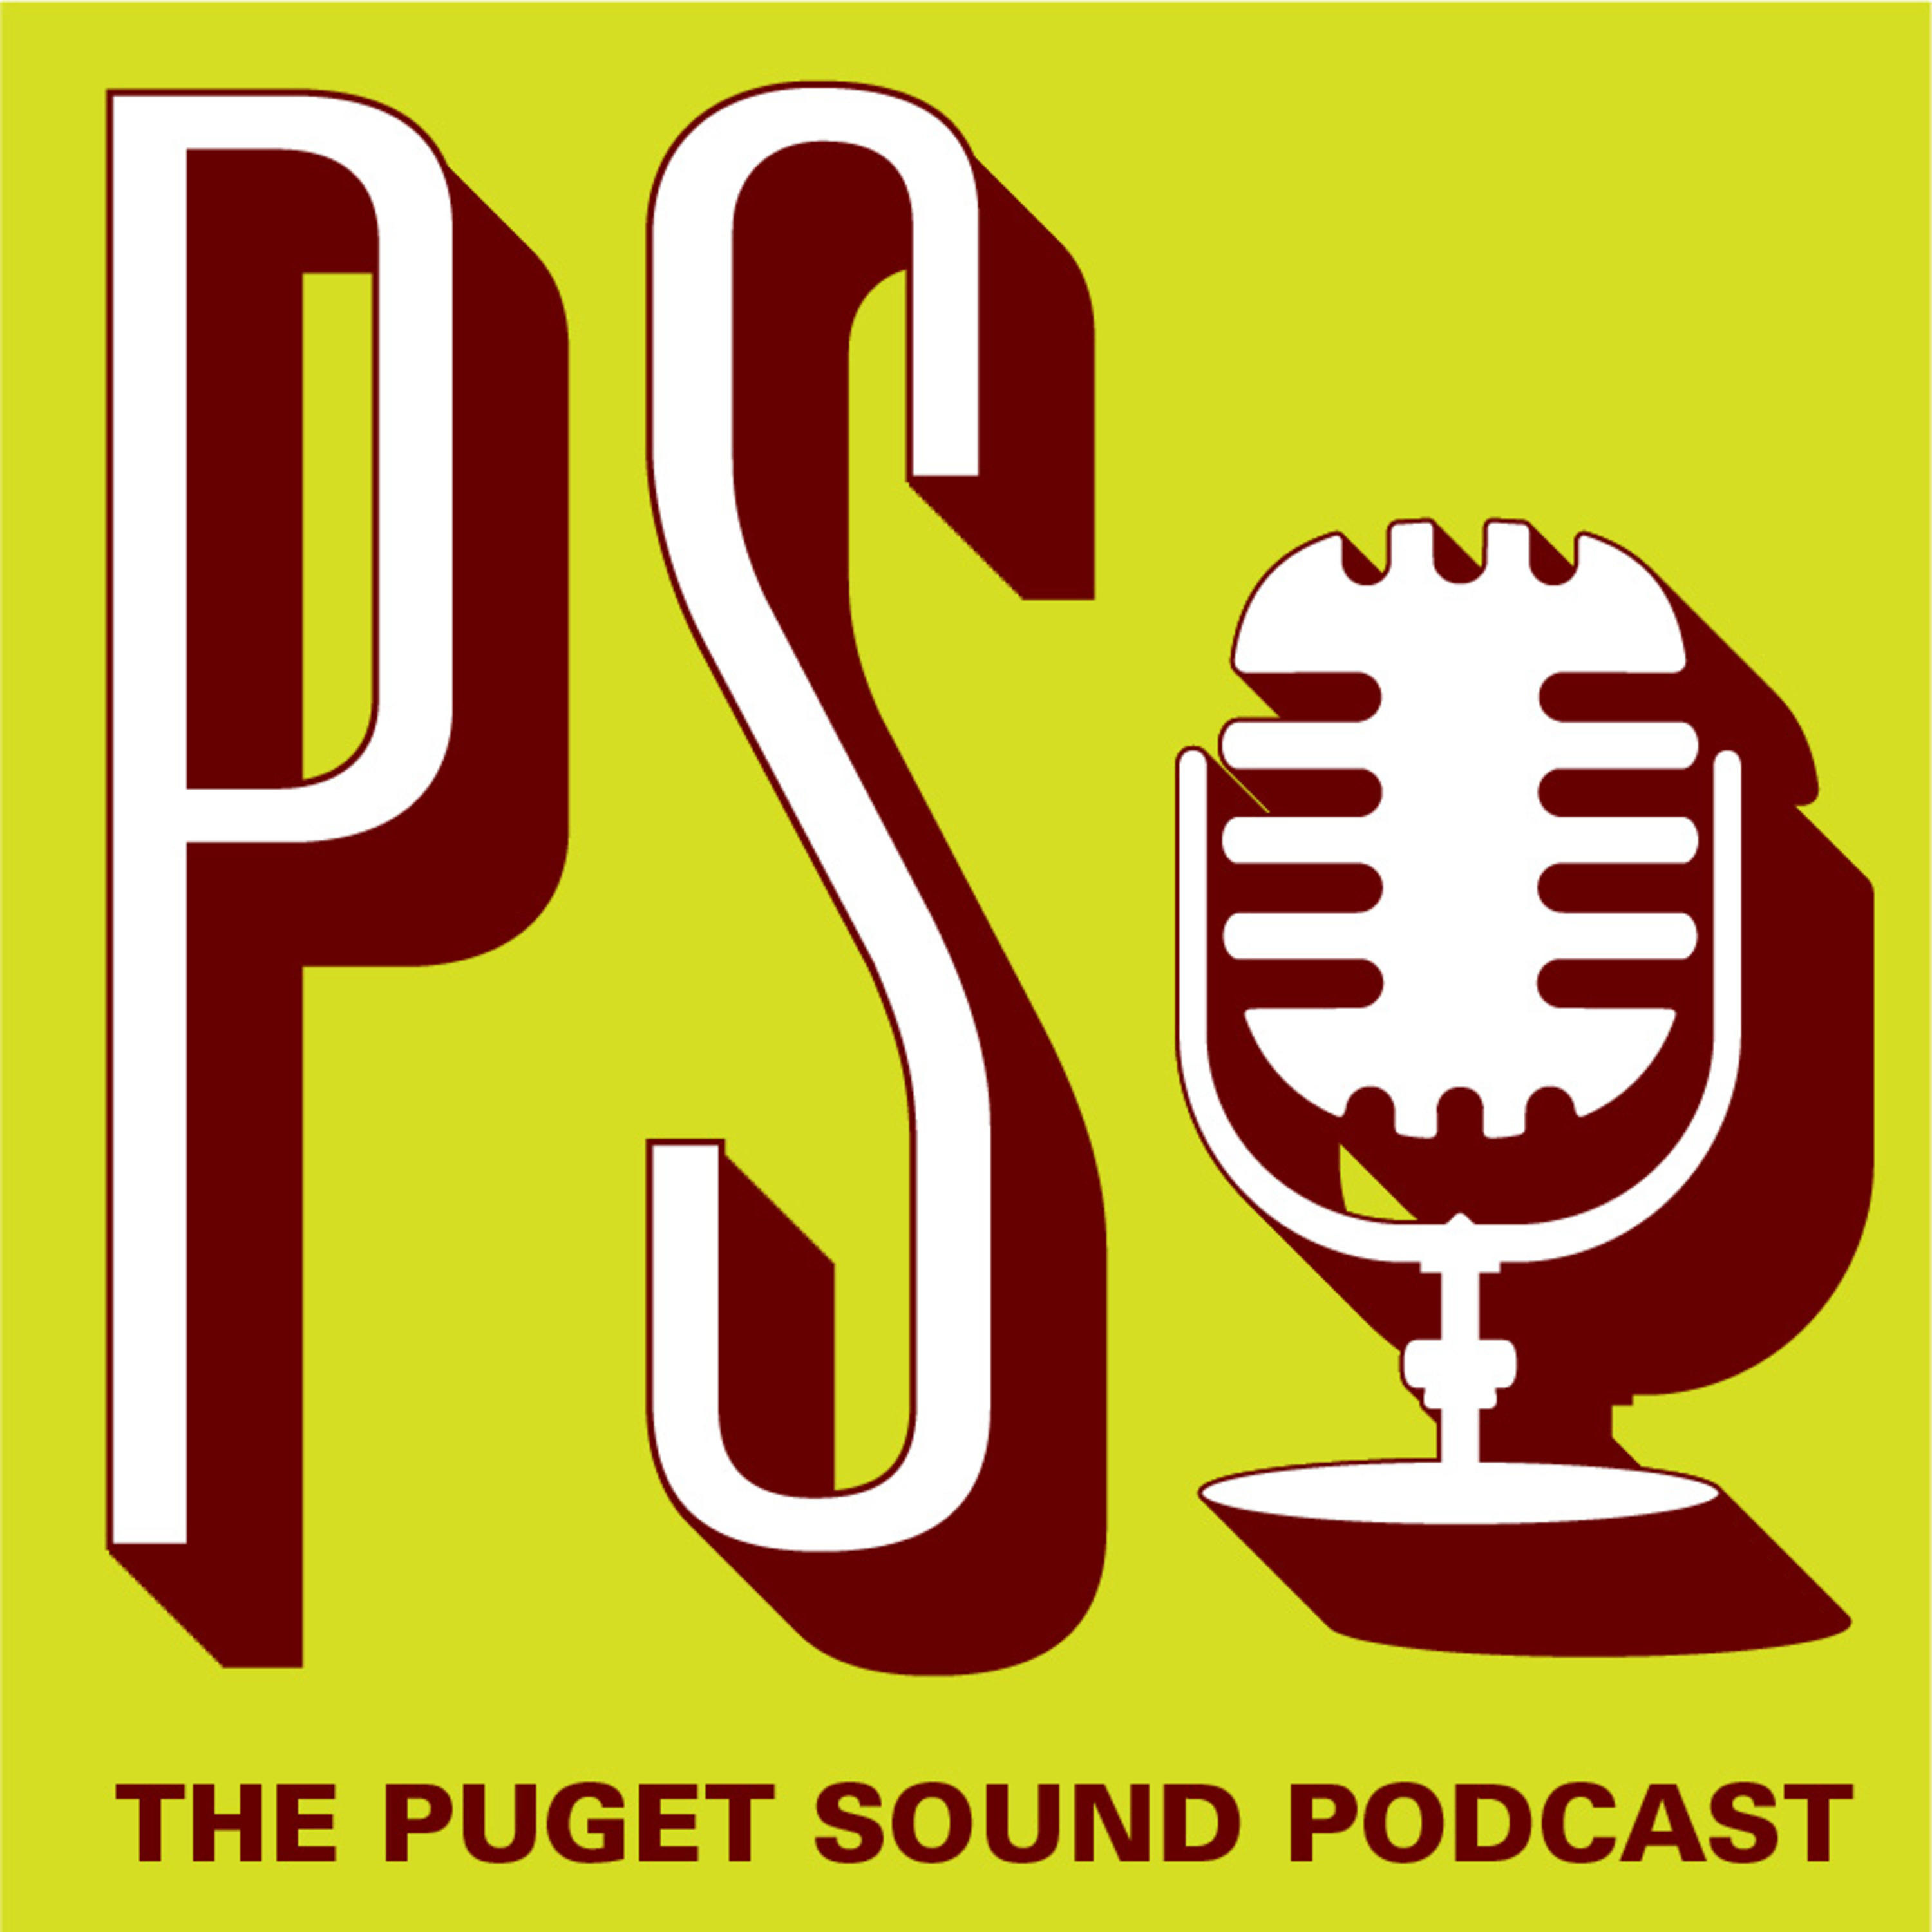 PS: The Puget Sound Podcast